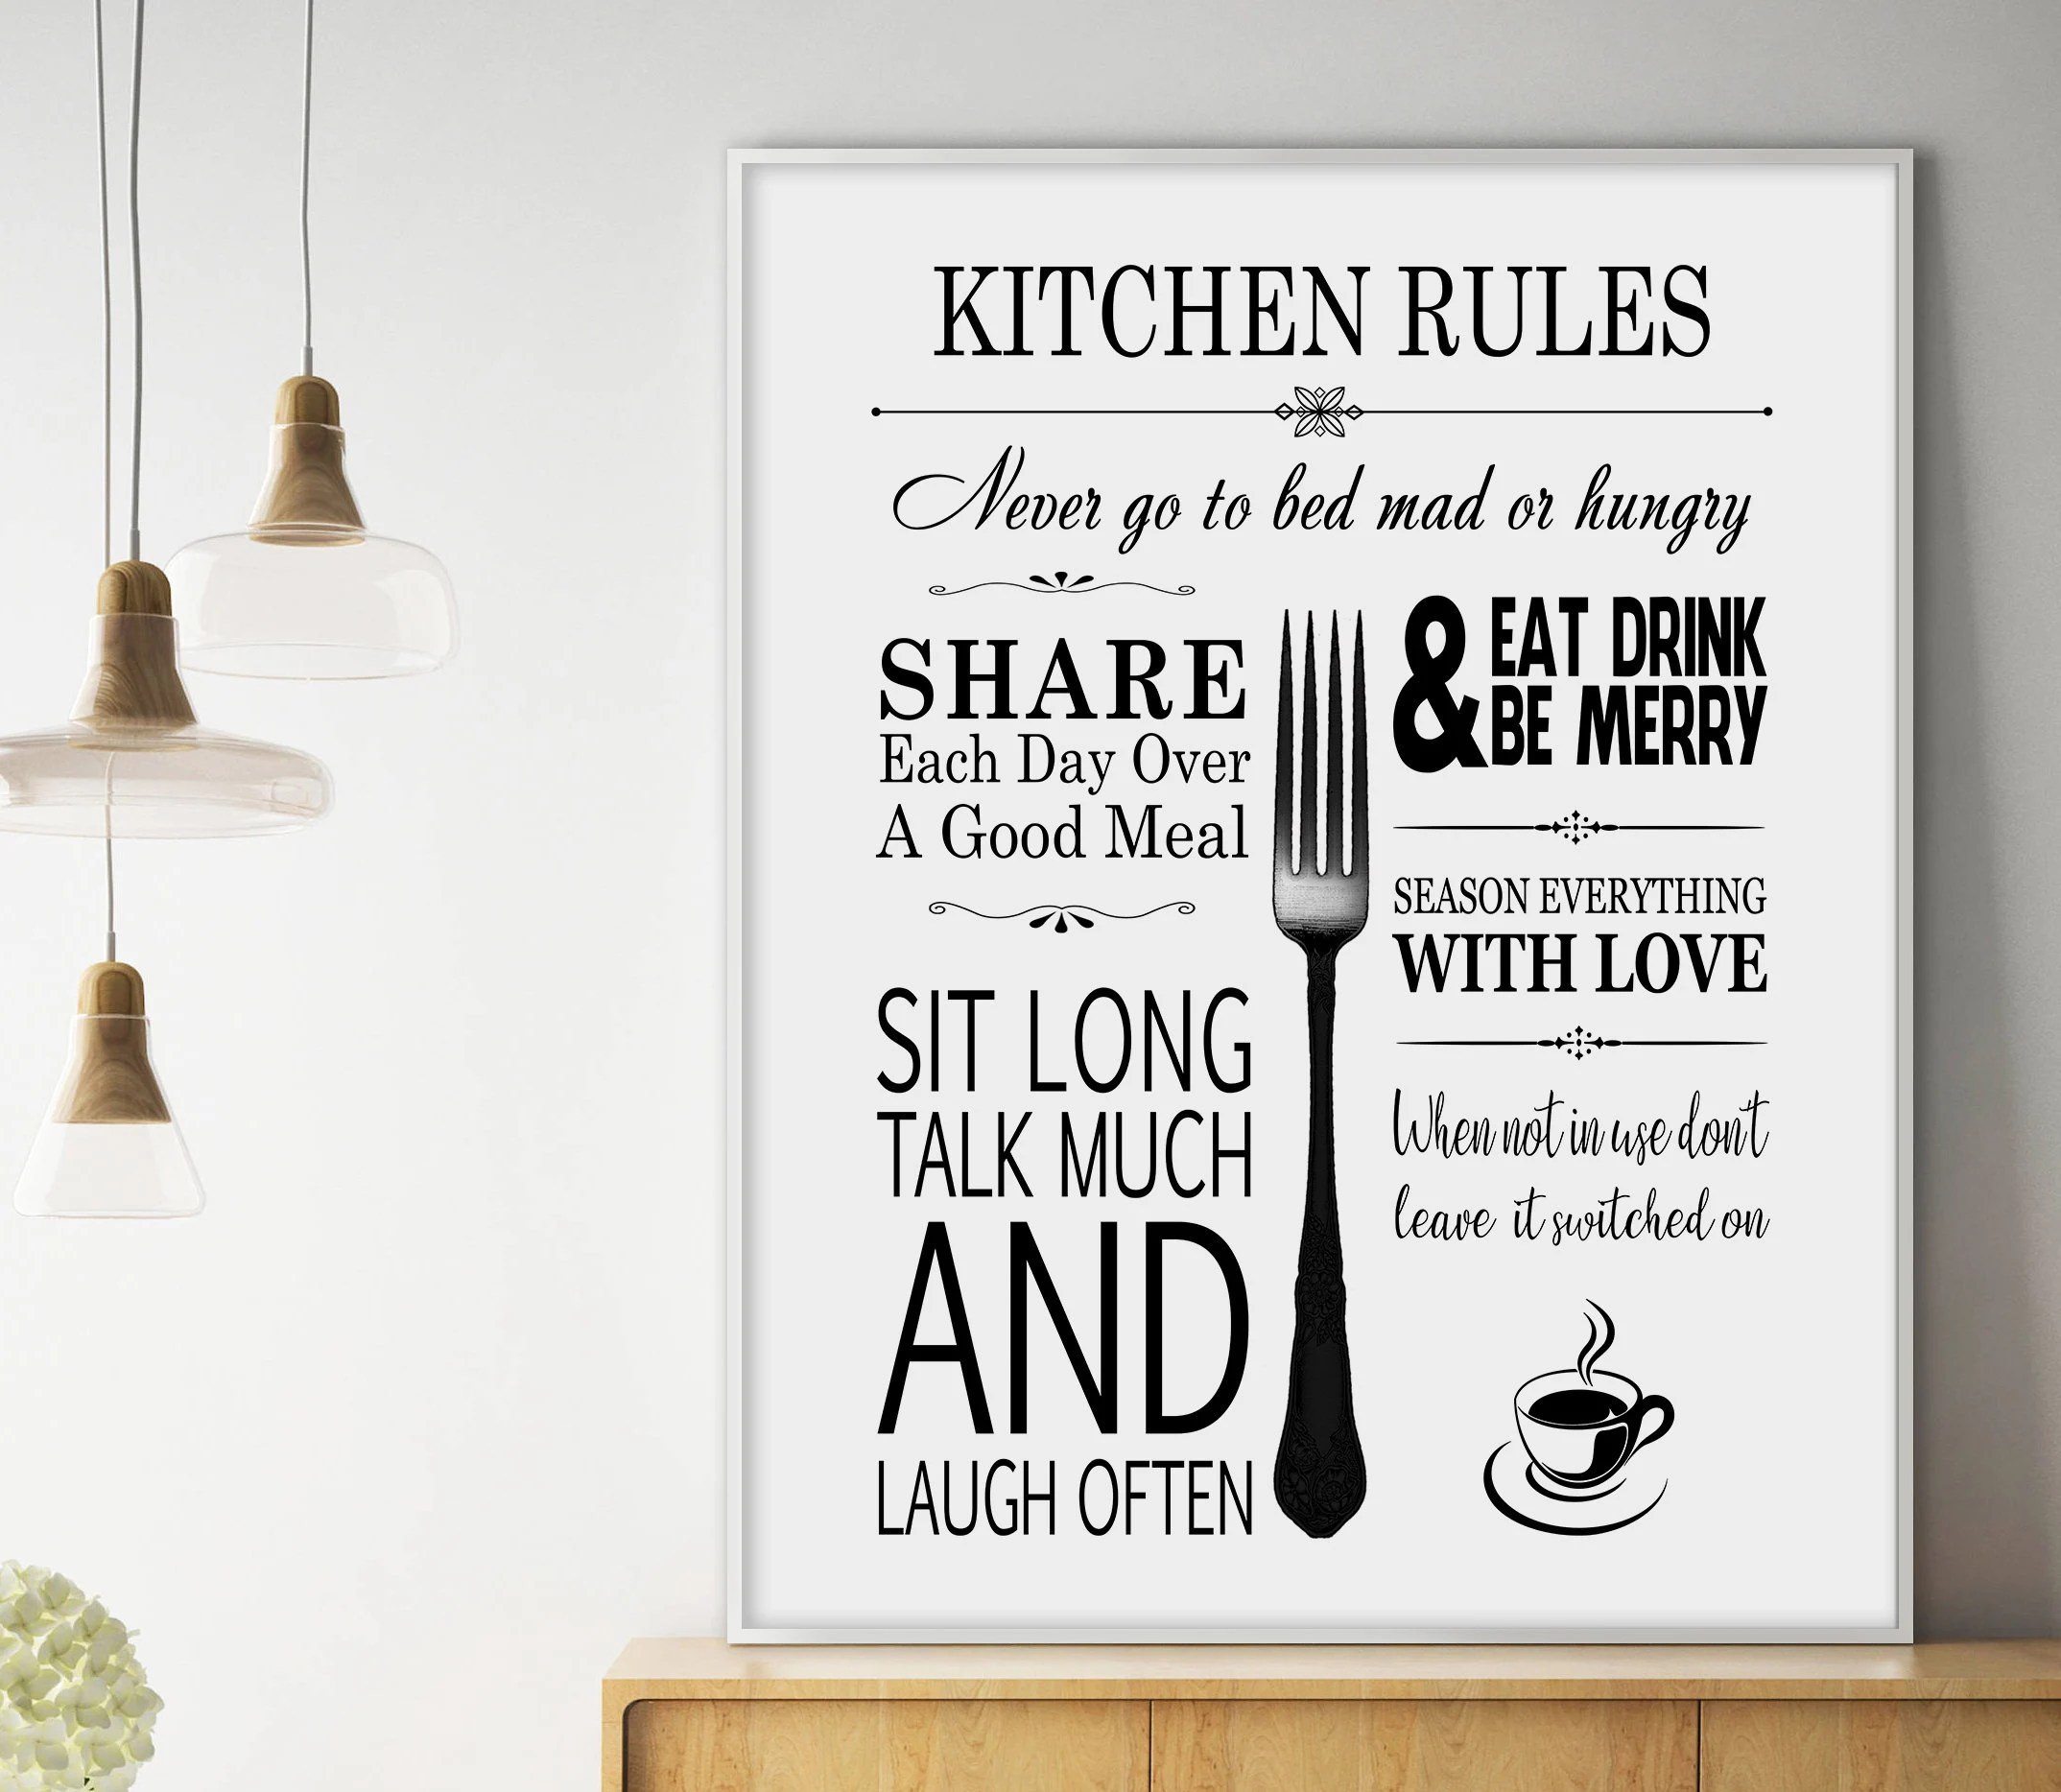 art for kitchen wall update ideas etsy rules sign decor print digital files